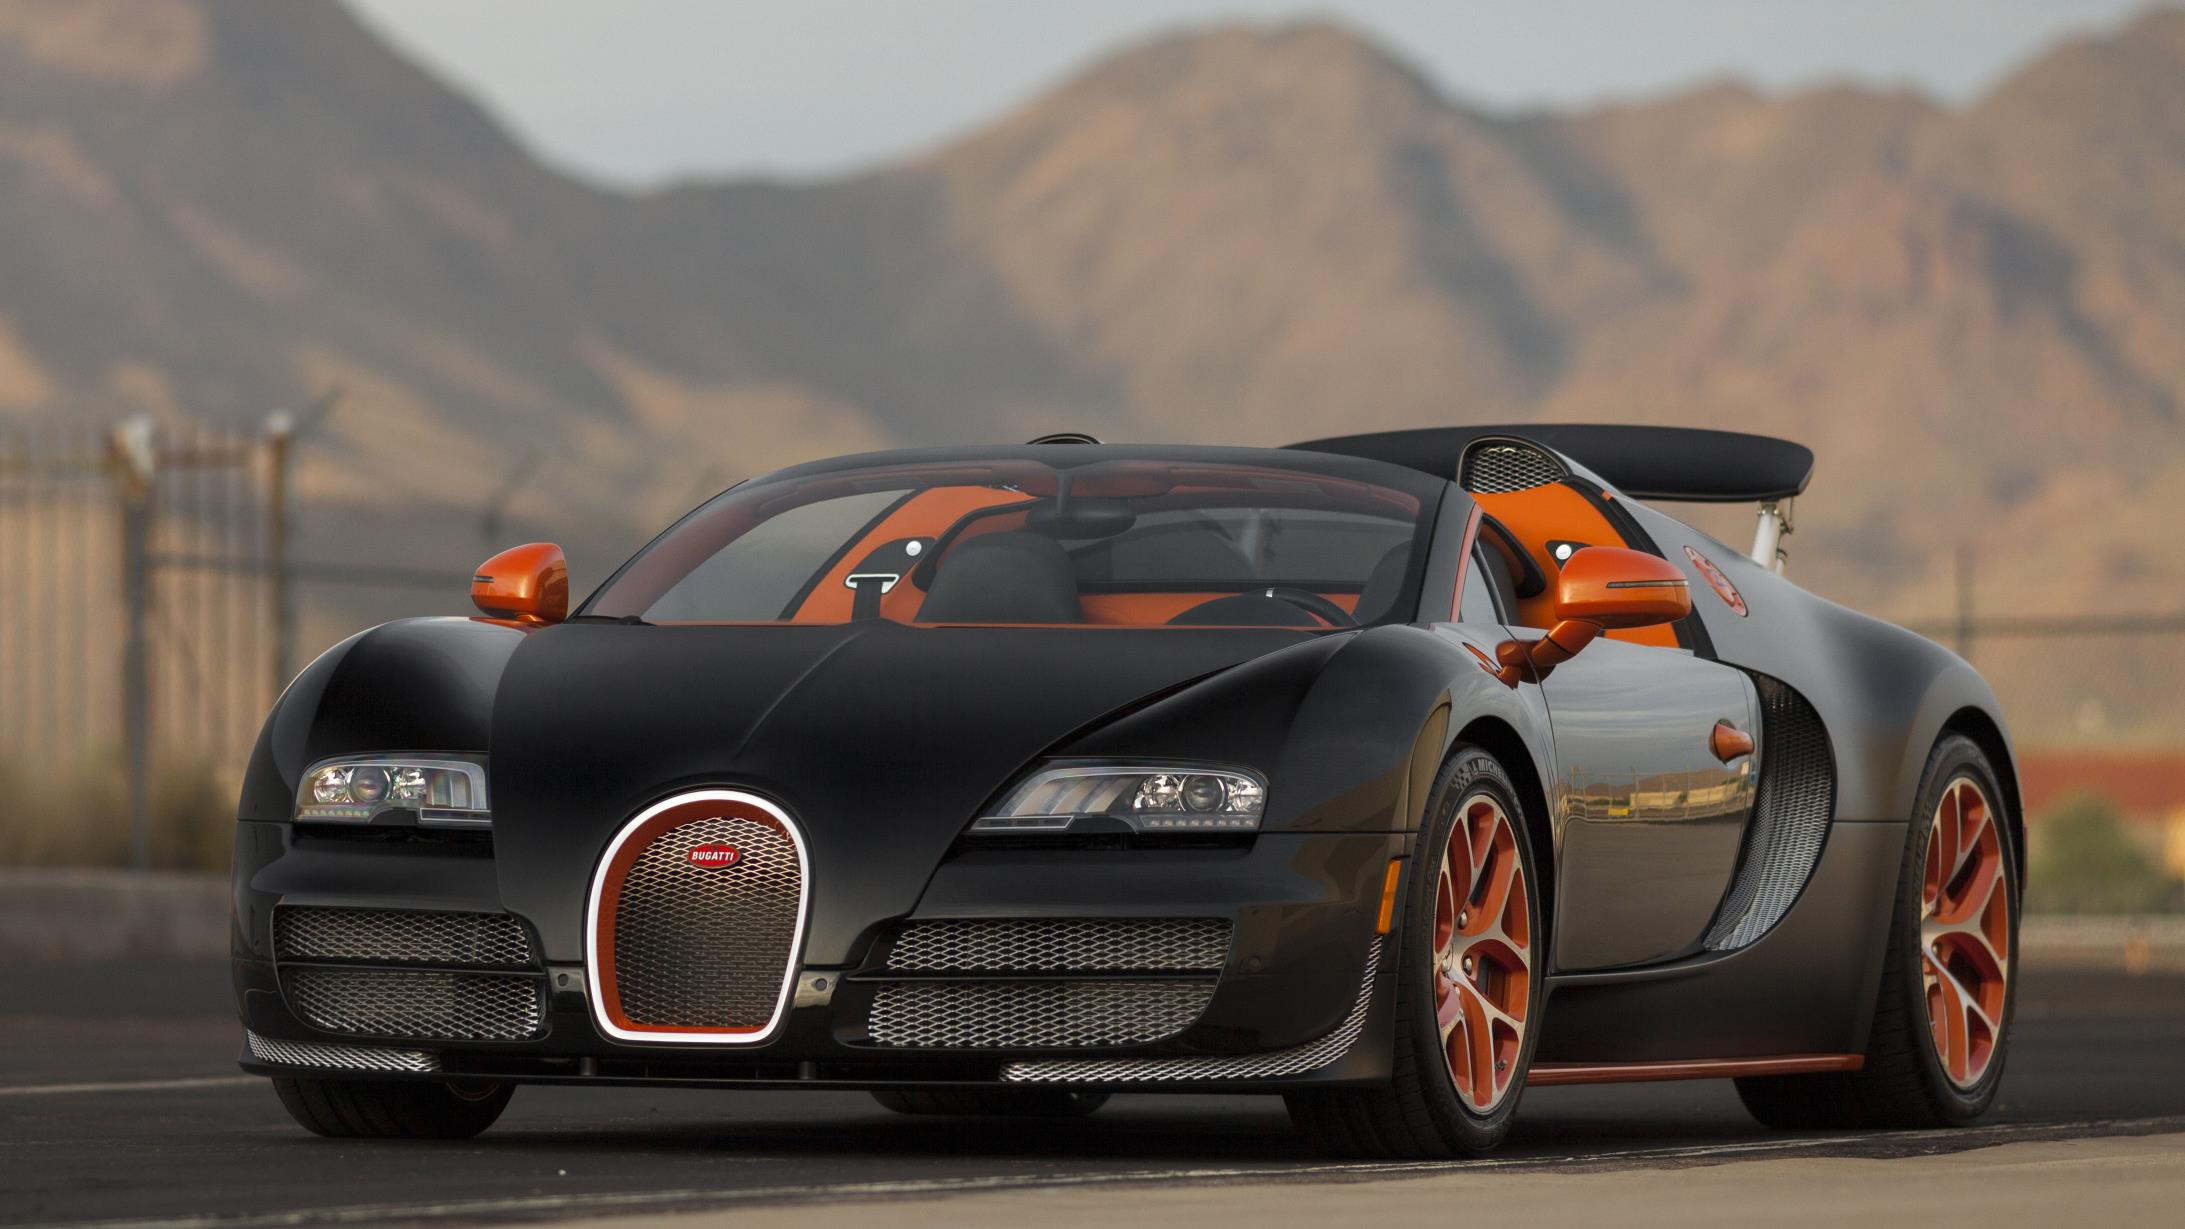 floyd-mayweather-s-koenigsegg-ccxr-trevita-is-up-for-grabs_4 Extraordinary Bugatti Veyron Grand Sport Vitesse Cars Trend